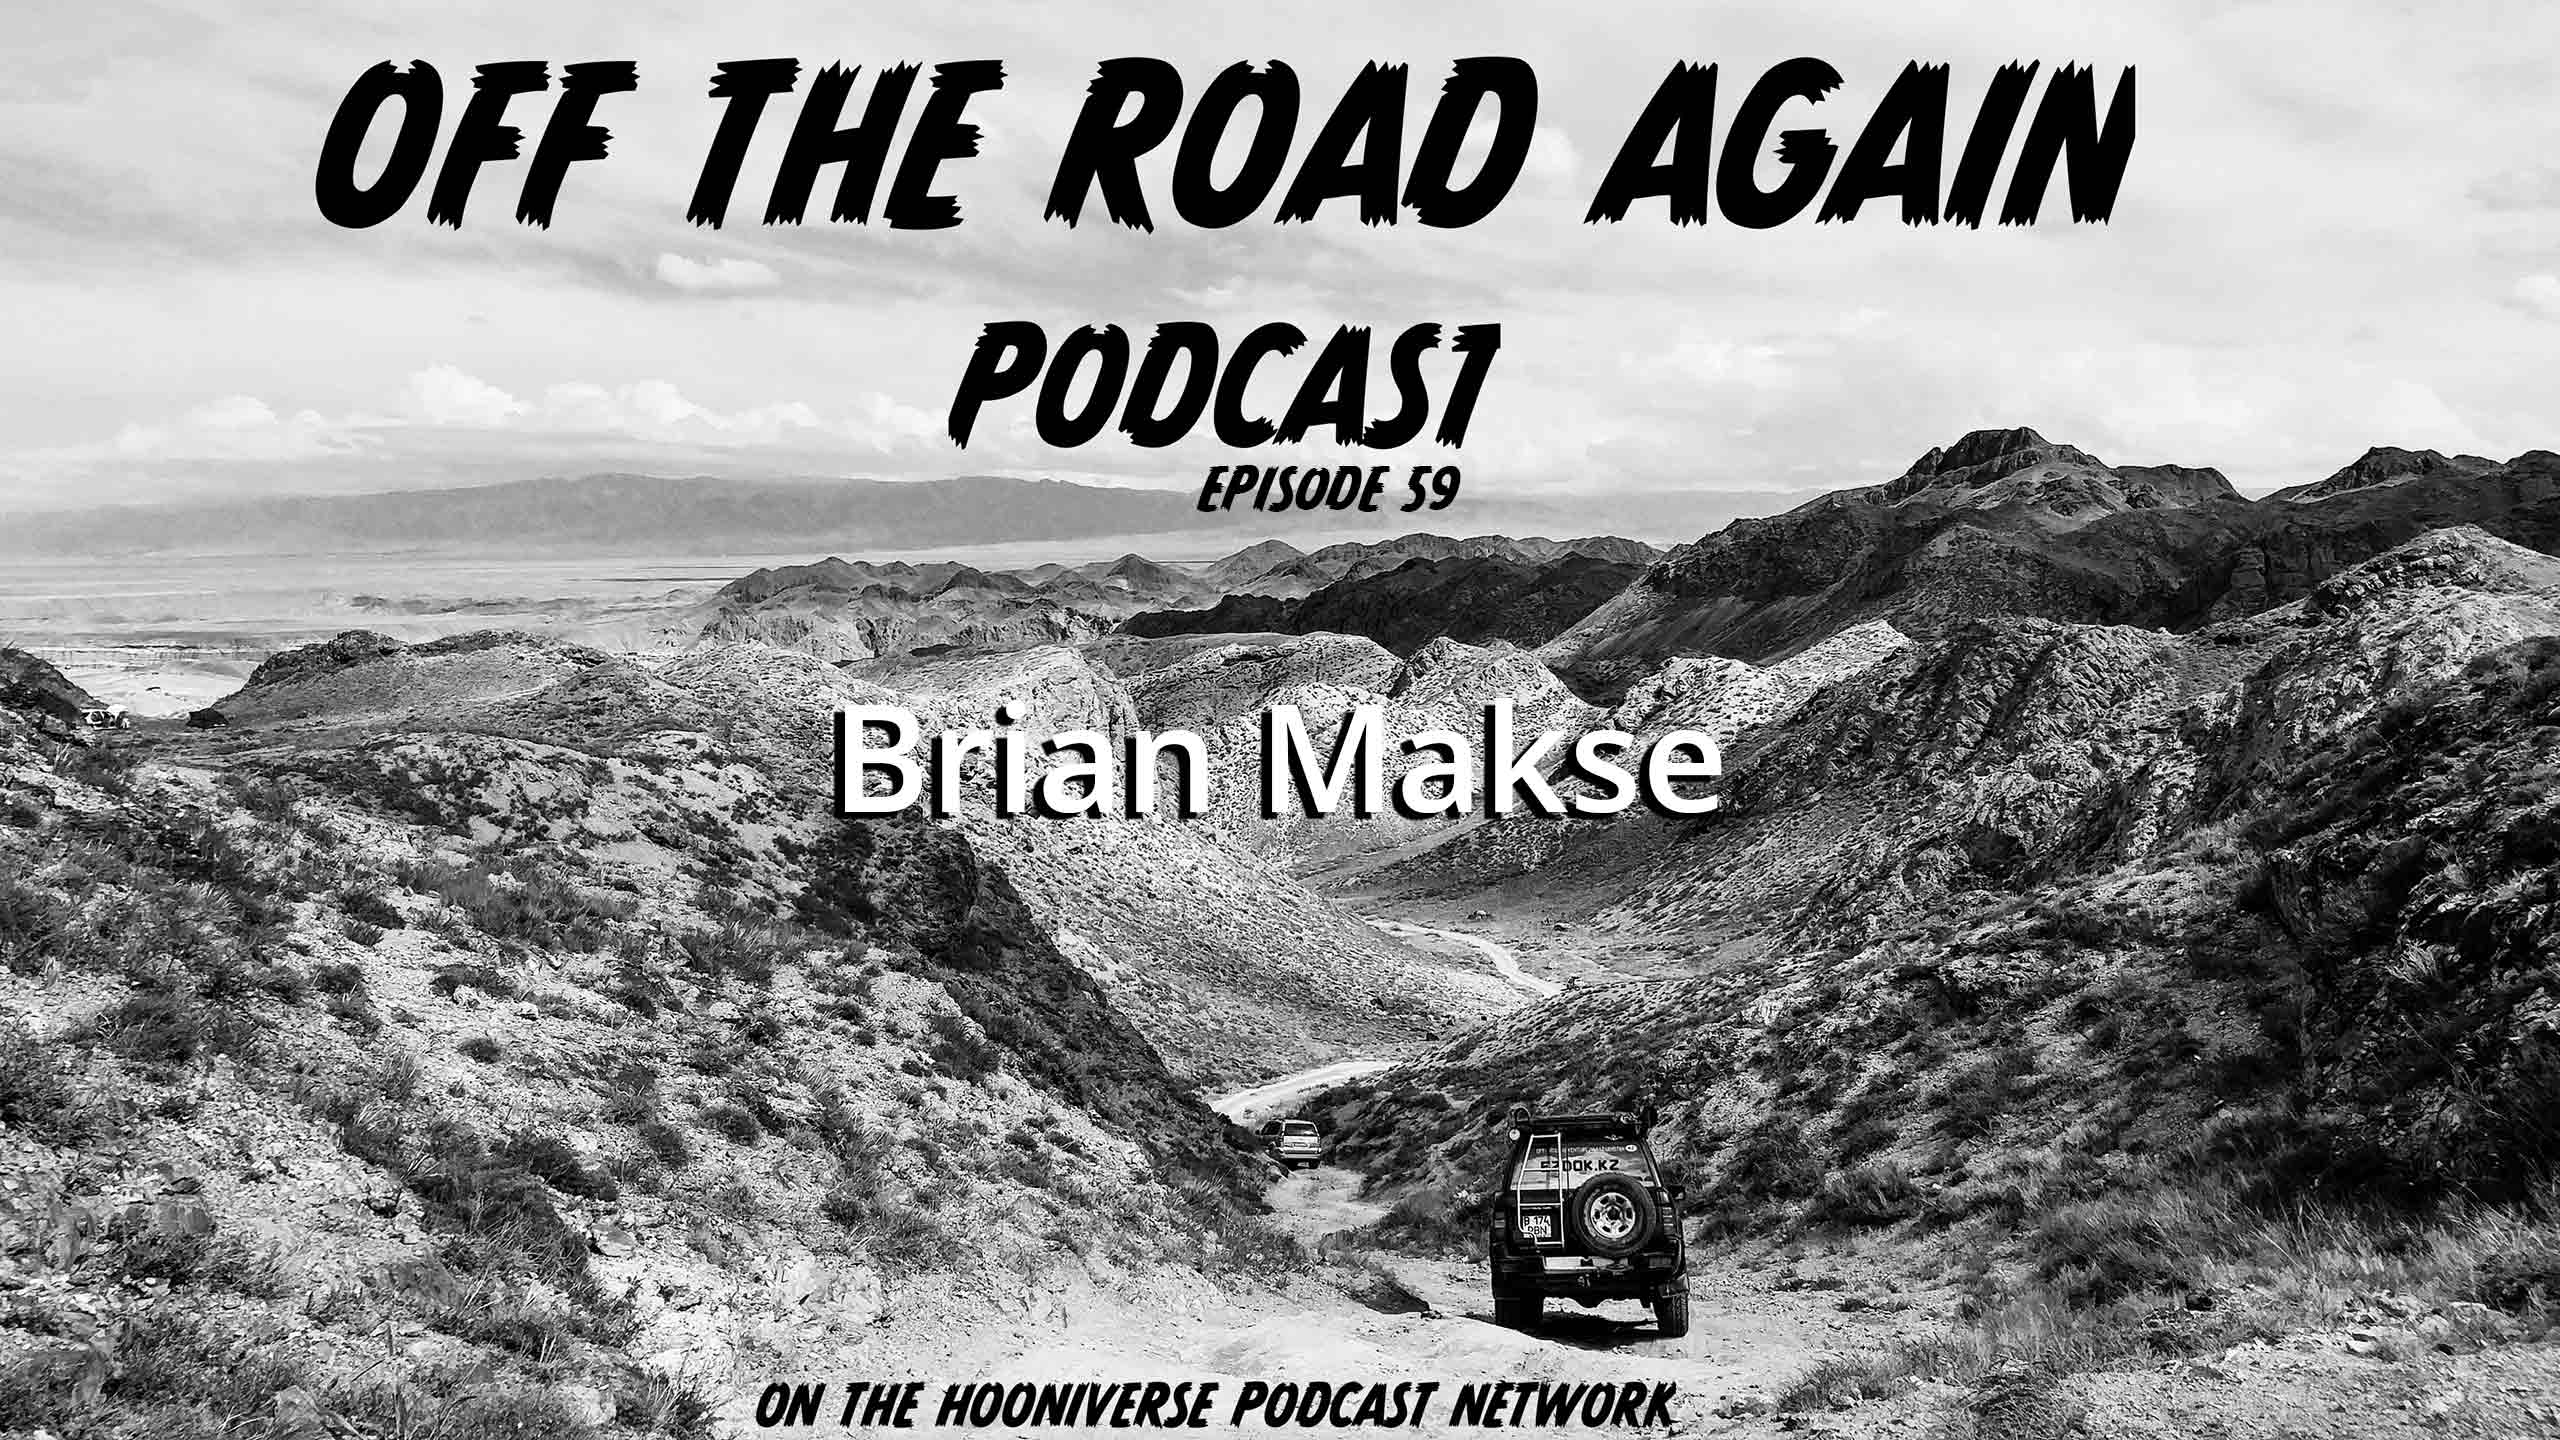 Brian-Makse-Off-The-Road-Again-Podcast-Episode-59